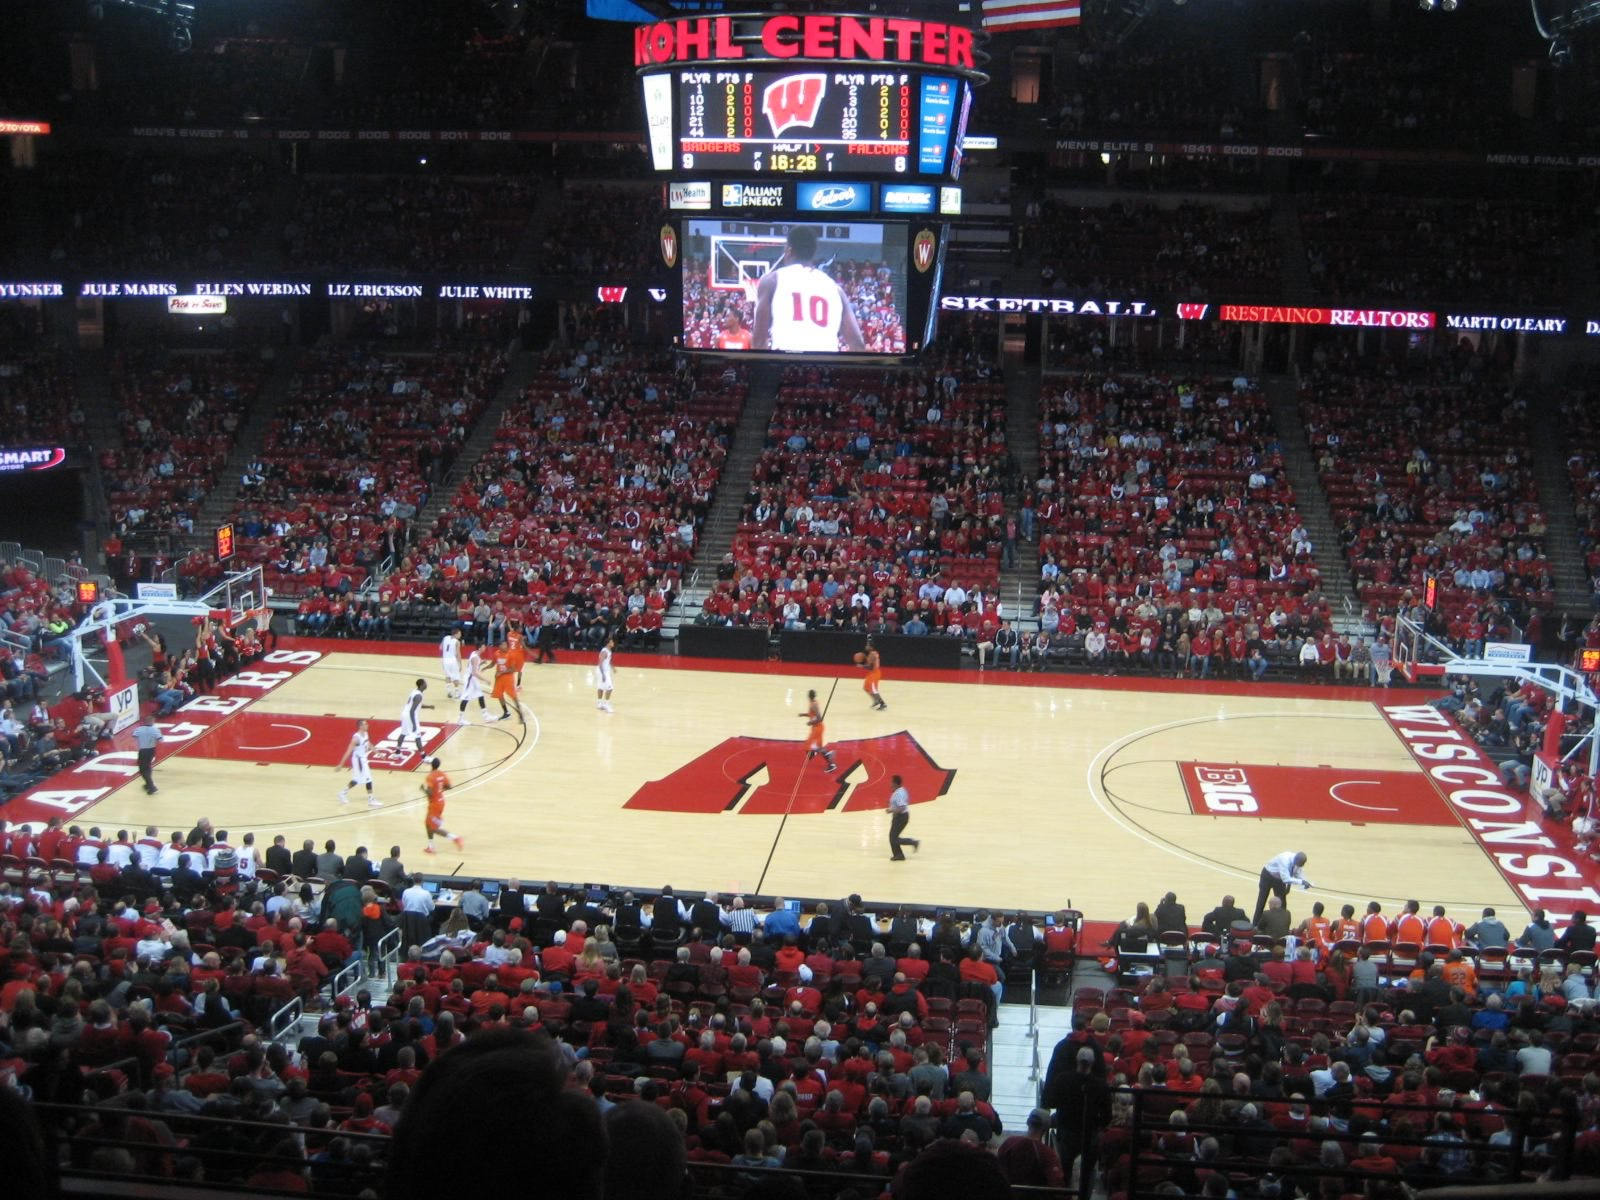 Seat View for Kohl Center Section 222, Row F, Seat 1